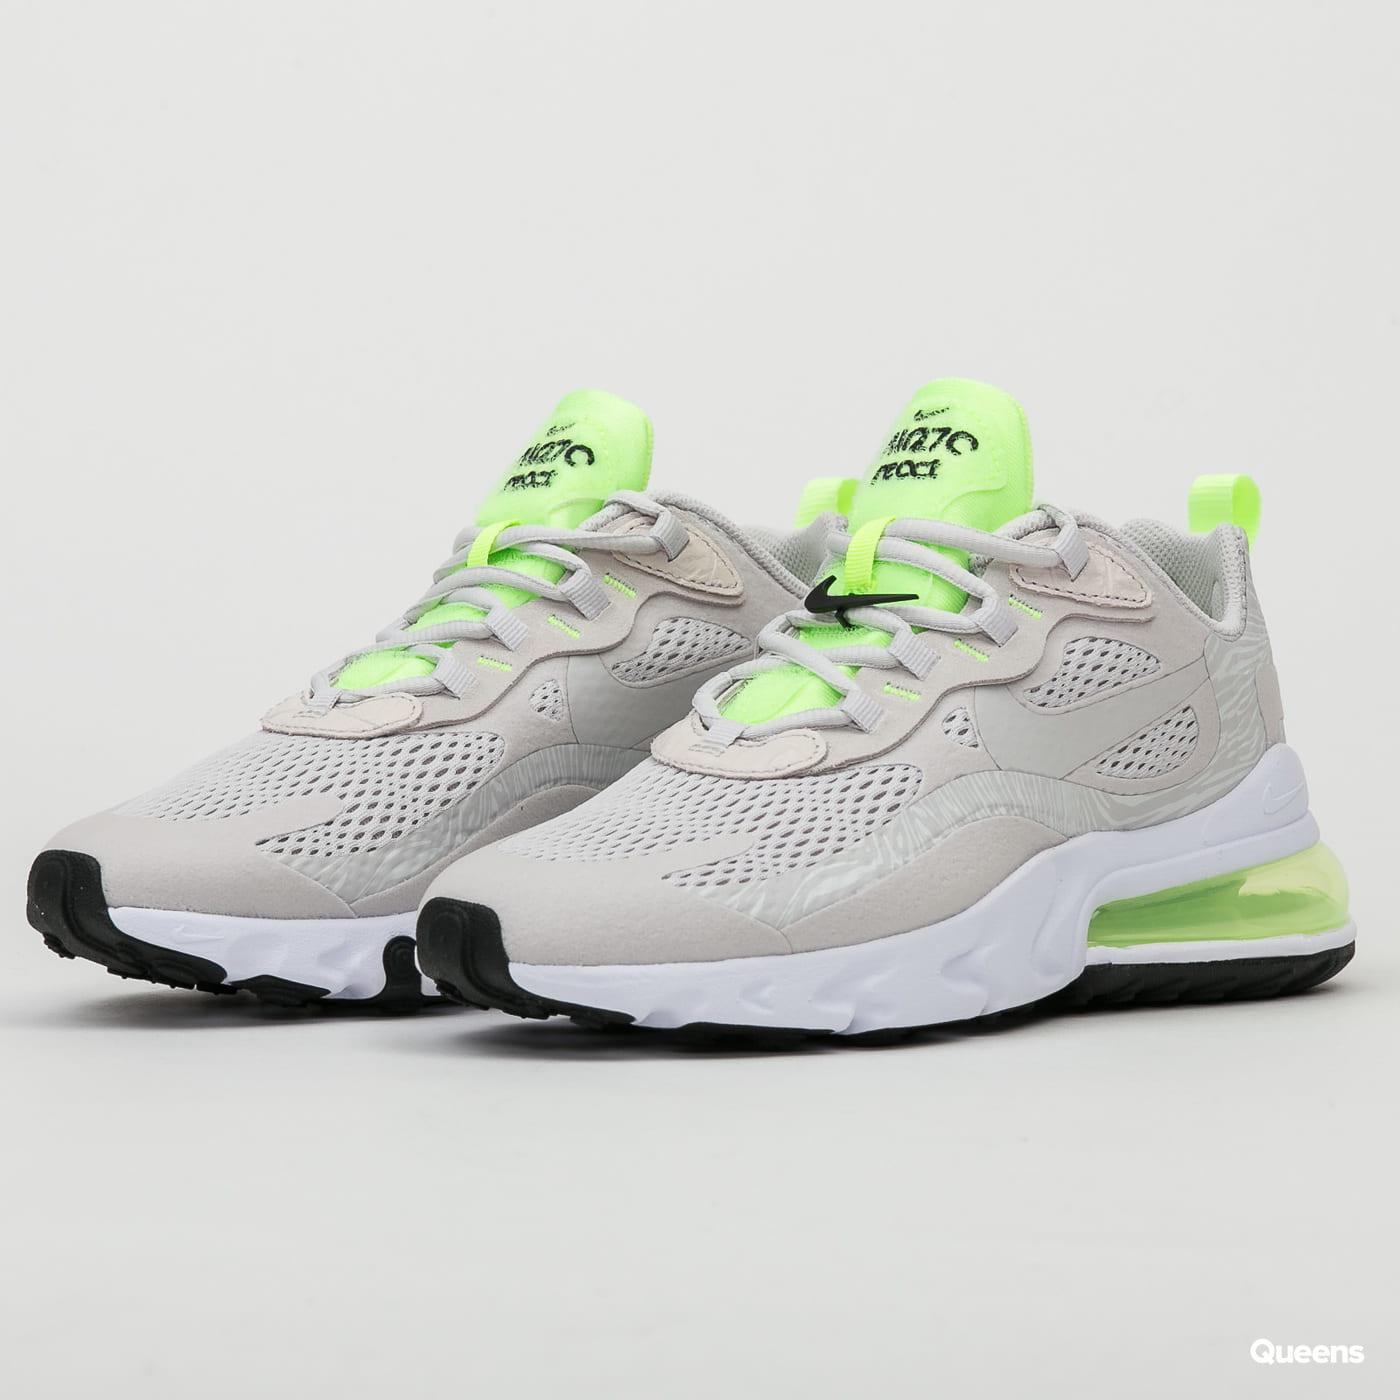 Nike Wmns Air Max 270 React Vast Grey Vast Grey Cu3447 001